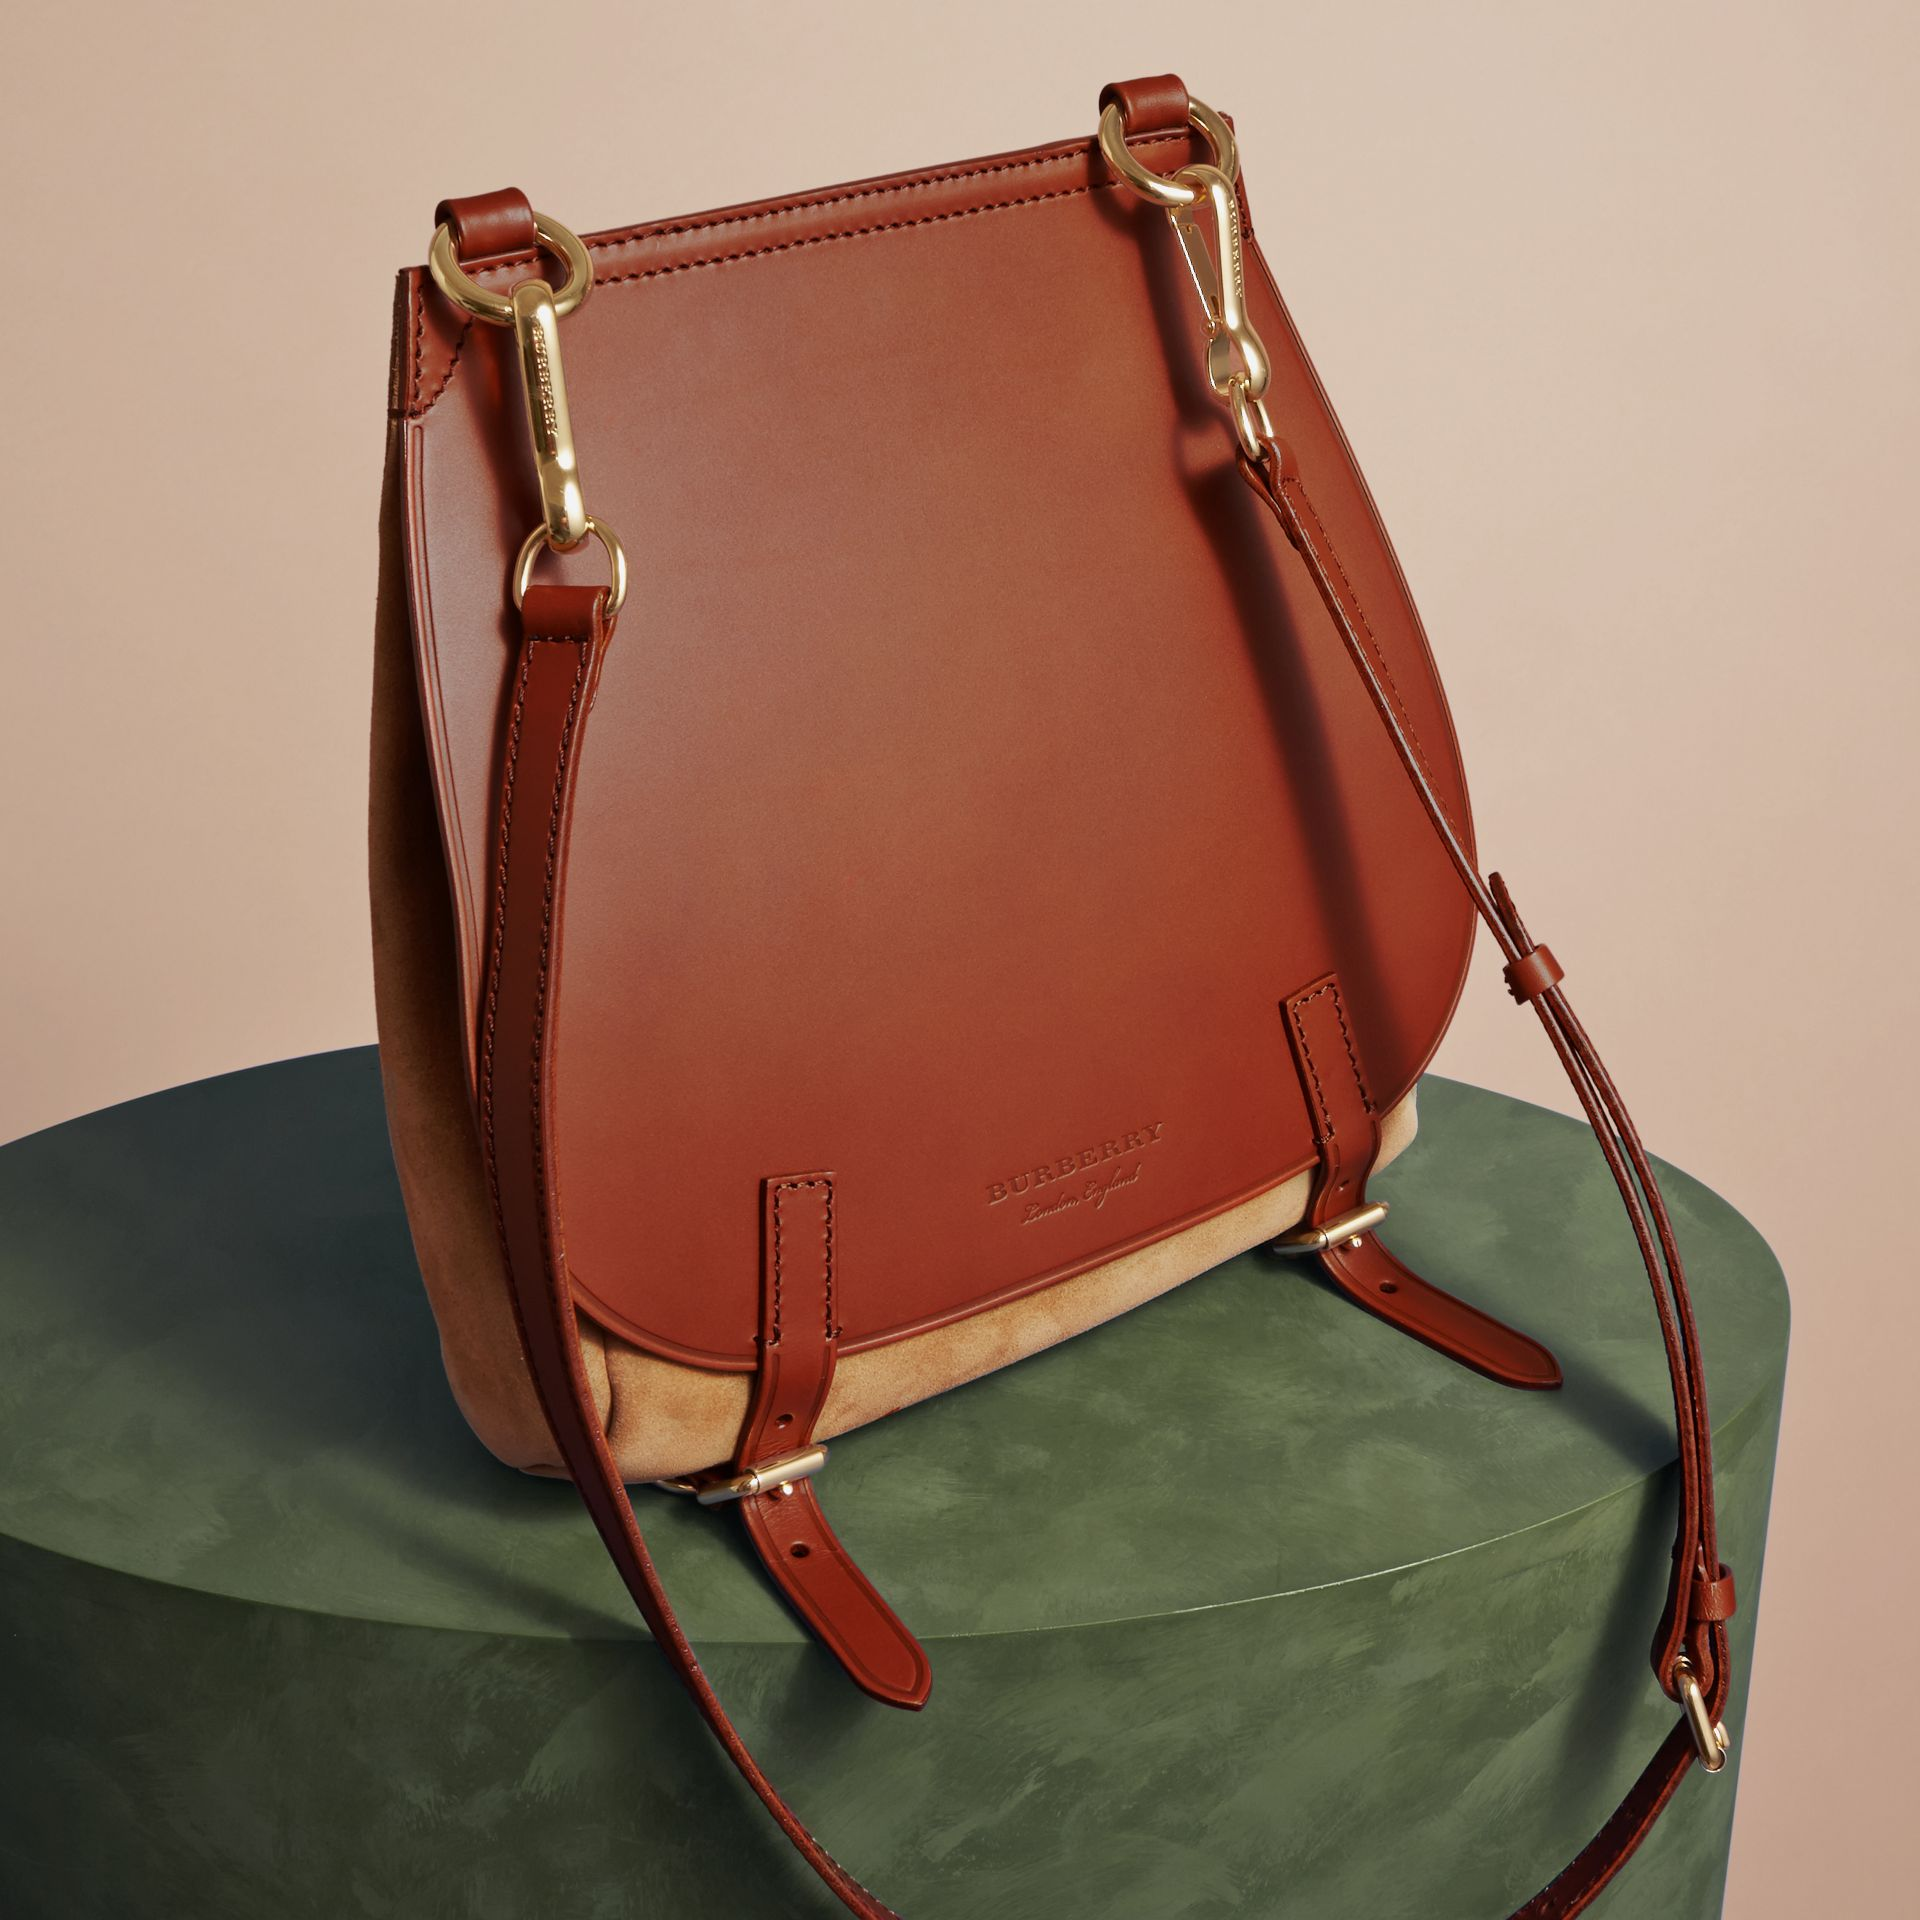 The Small Bridle Bag in Leather and Suede in Tan - Men | Burberry - gallery image 7